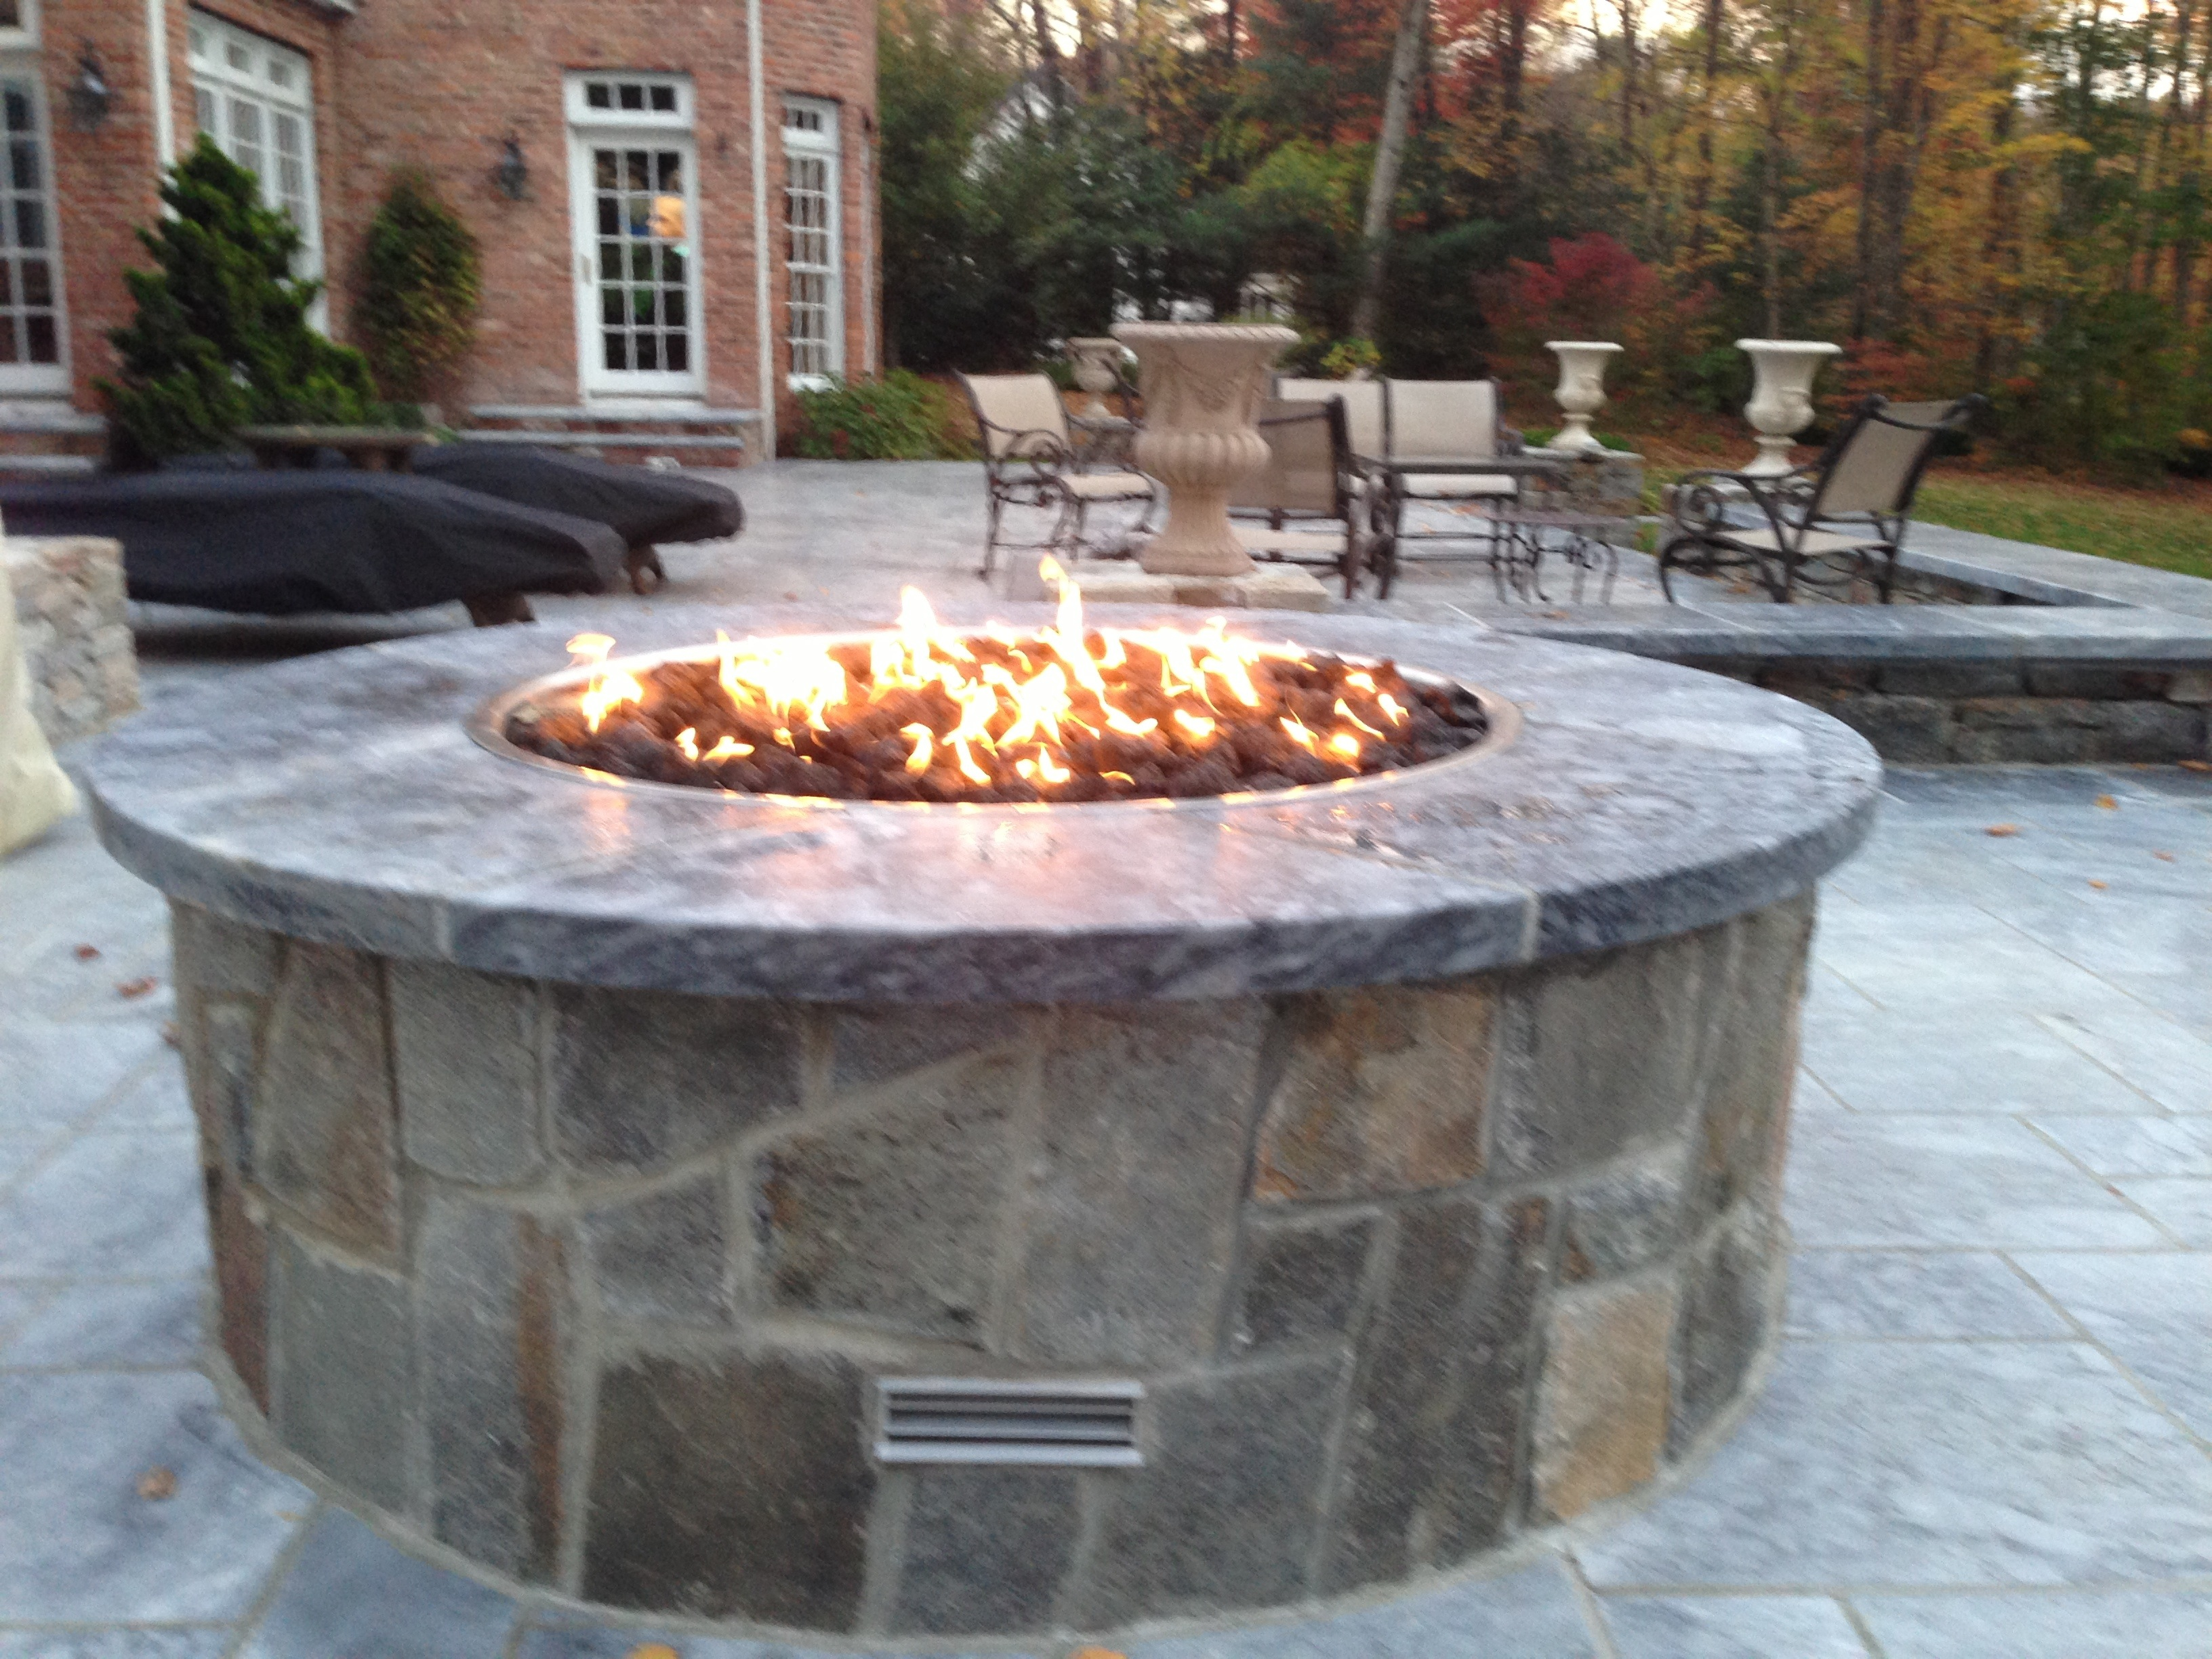 Choosing The Perfect Fire Feature For Your Backyard